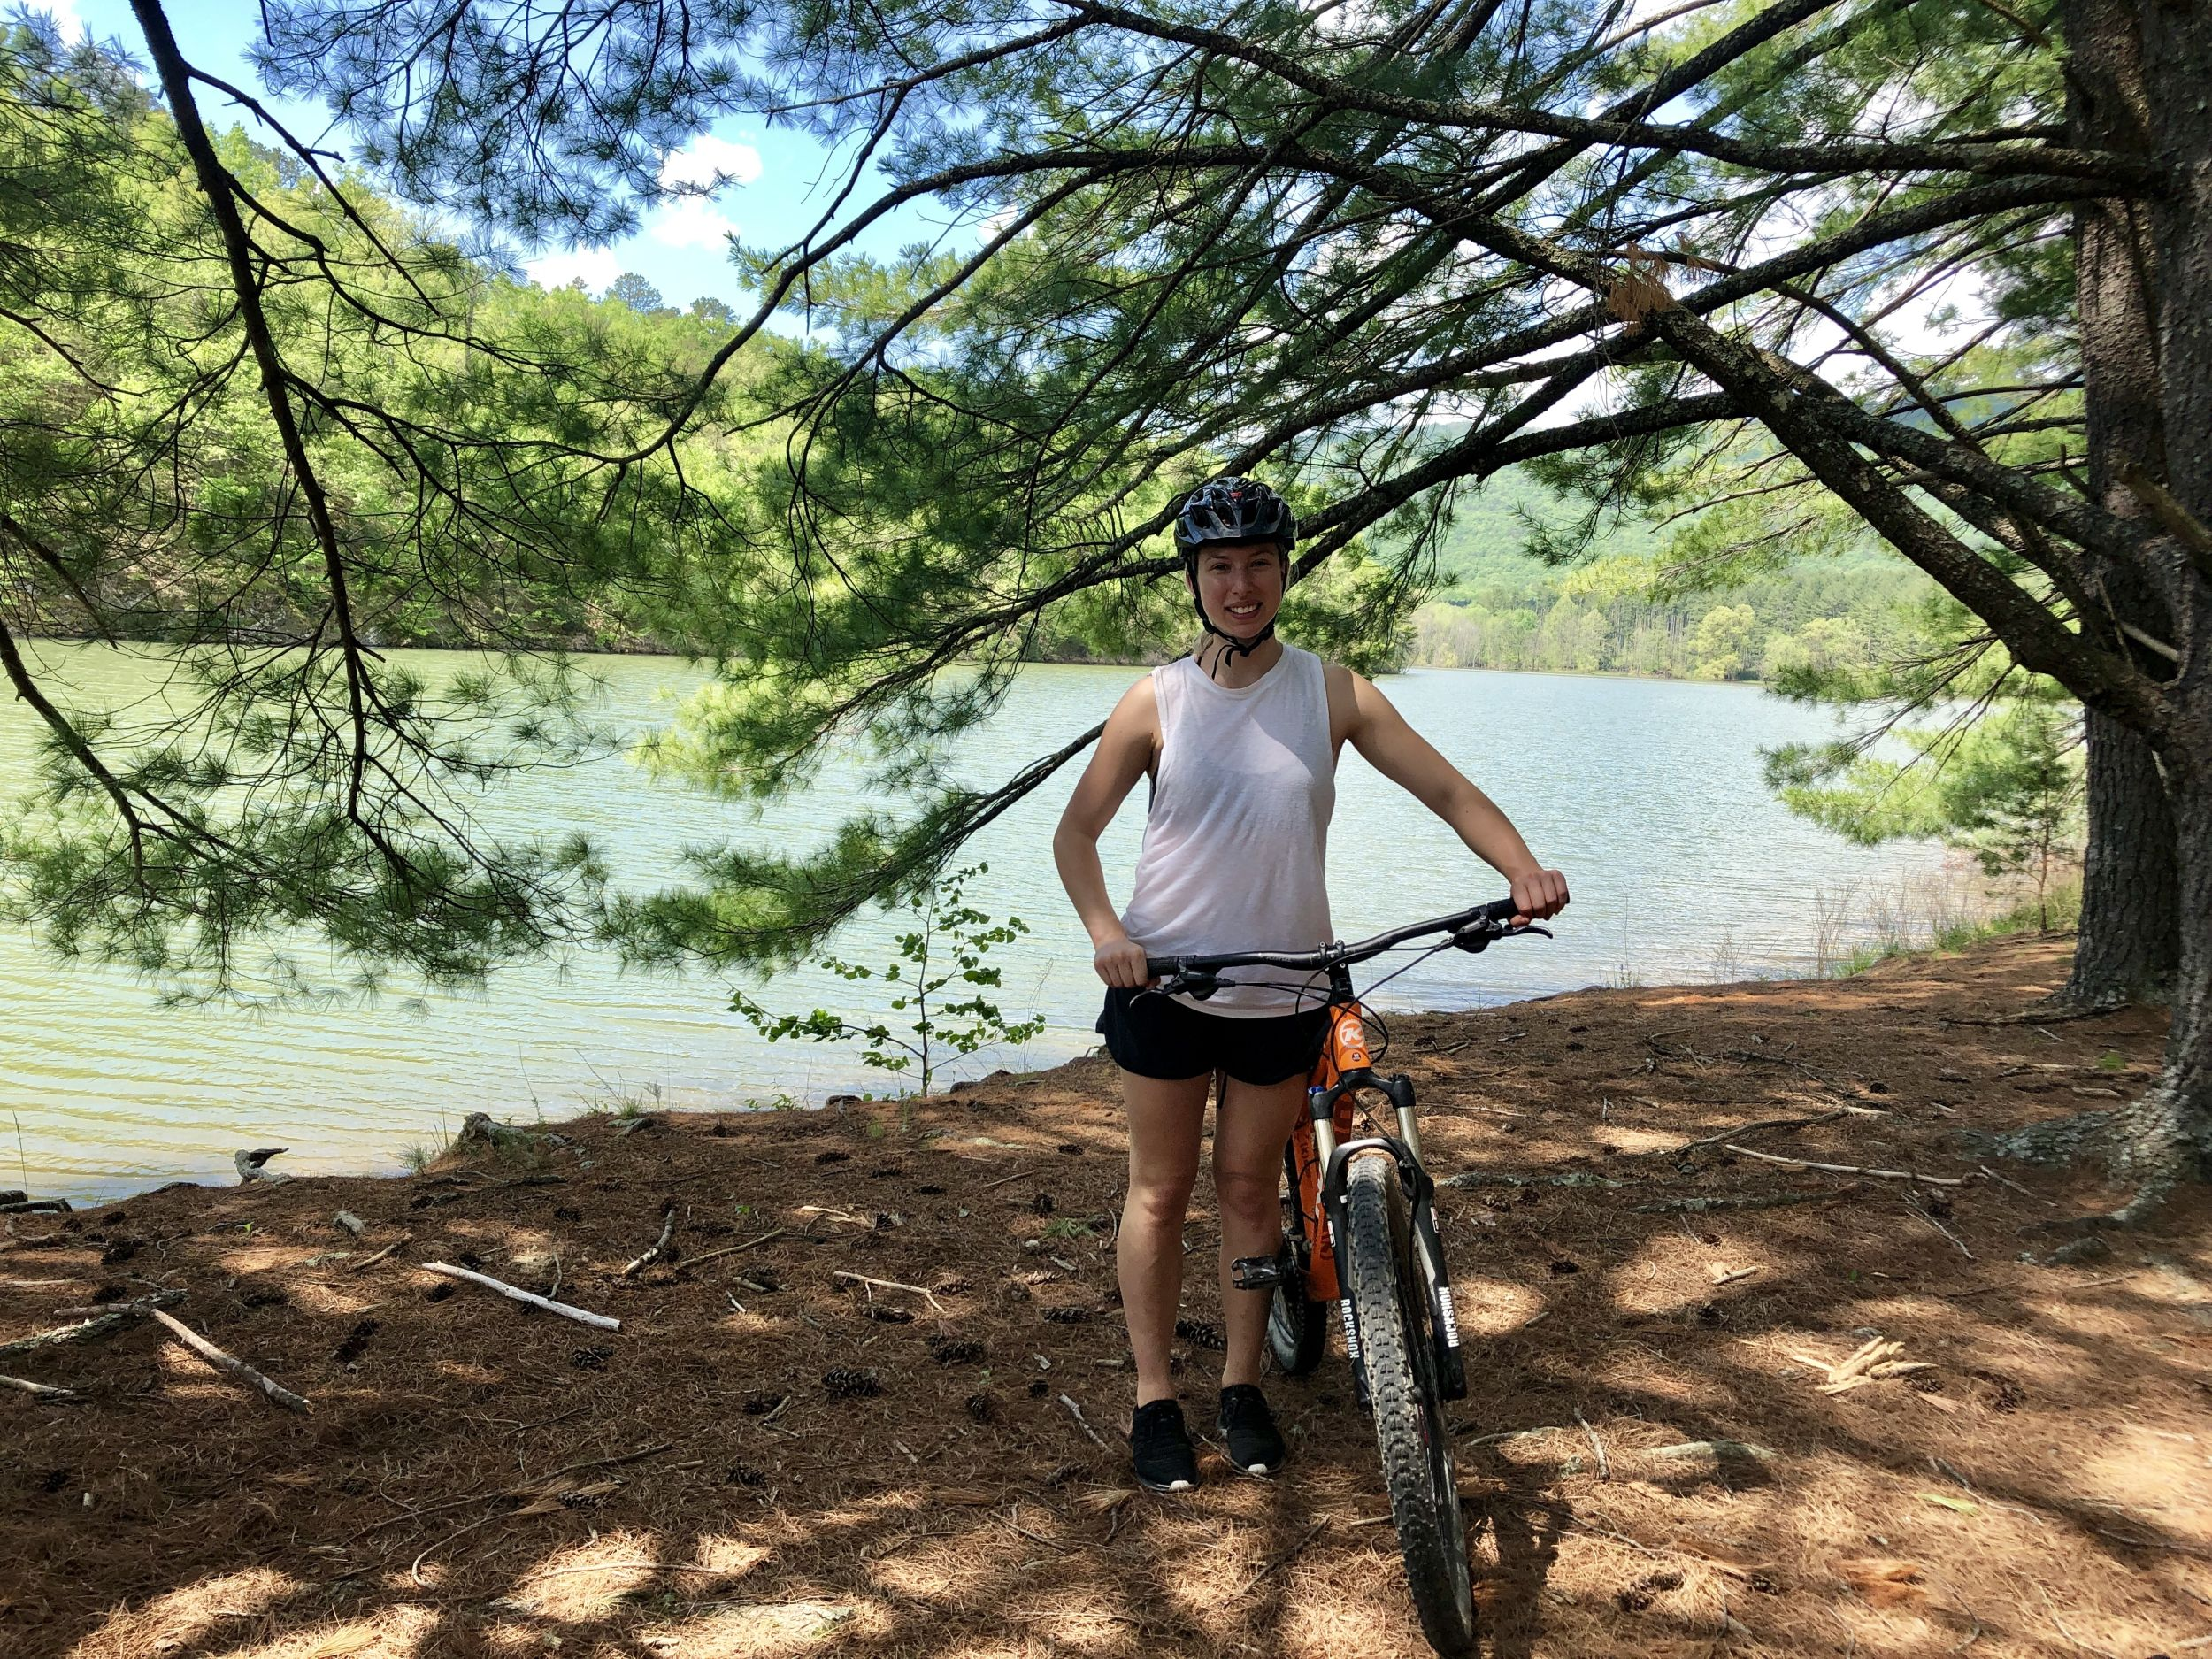 Emilia Harris mountain biking in Carvins Cove, in Virginia's Blue Ridge (Emilia Harris/PA)